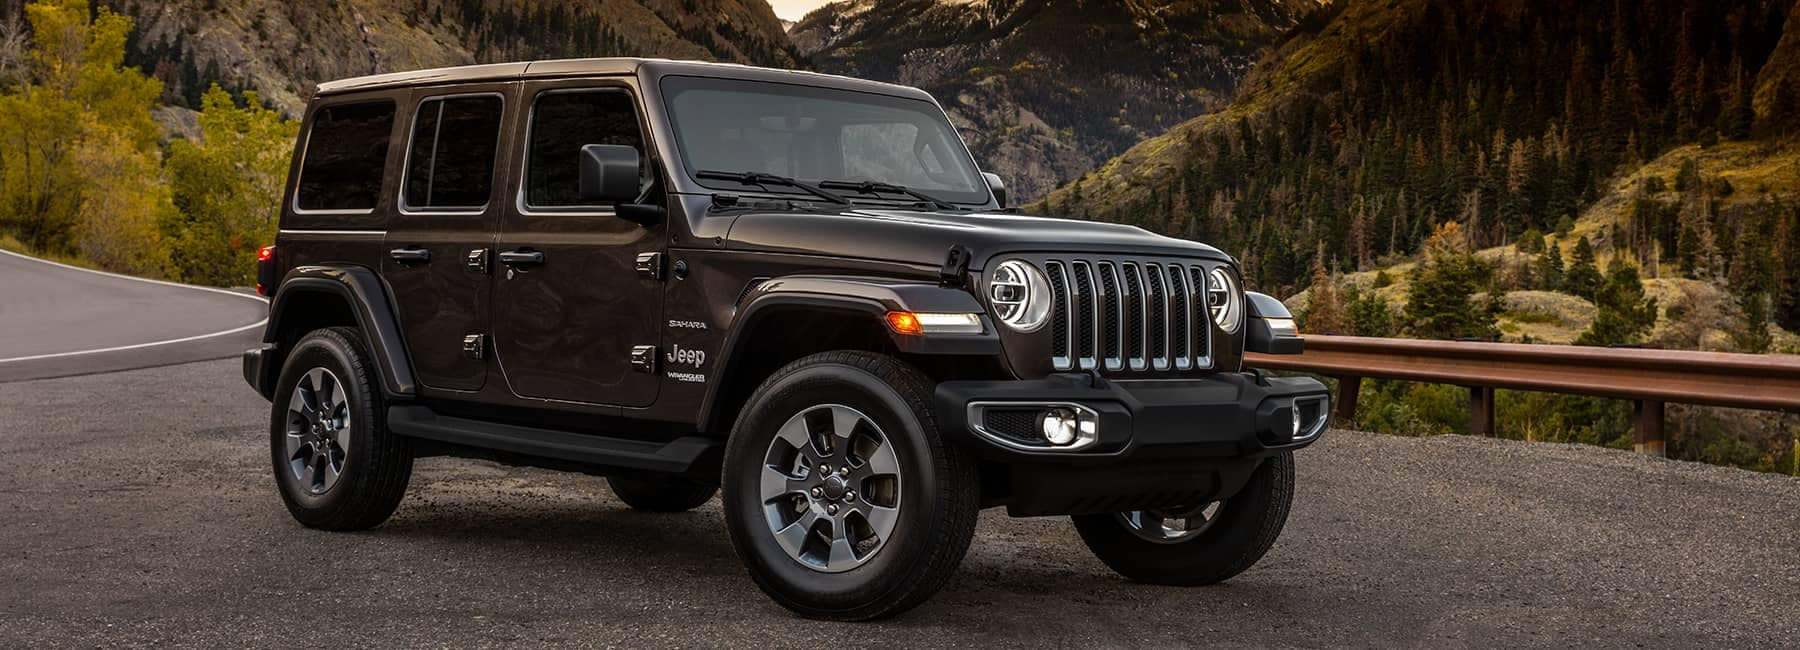 Jeep Wrangler Maintenance Schedule Mansfield Ma Station Chrysler Jeep